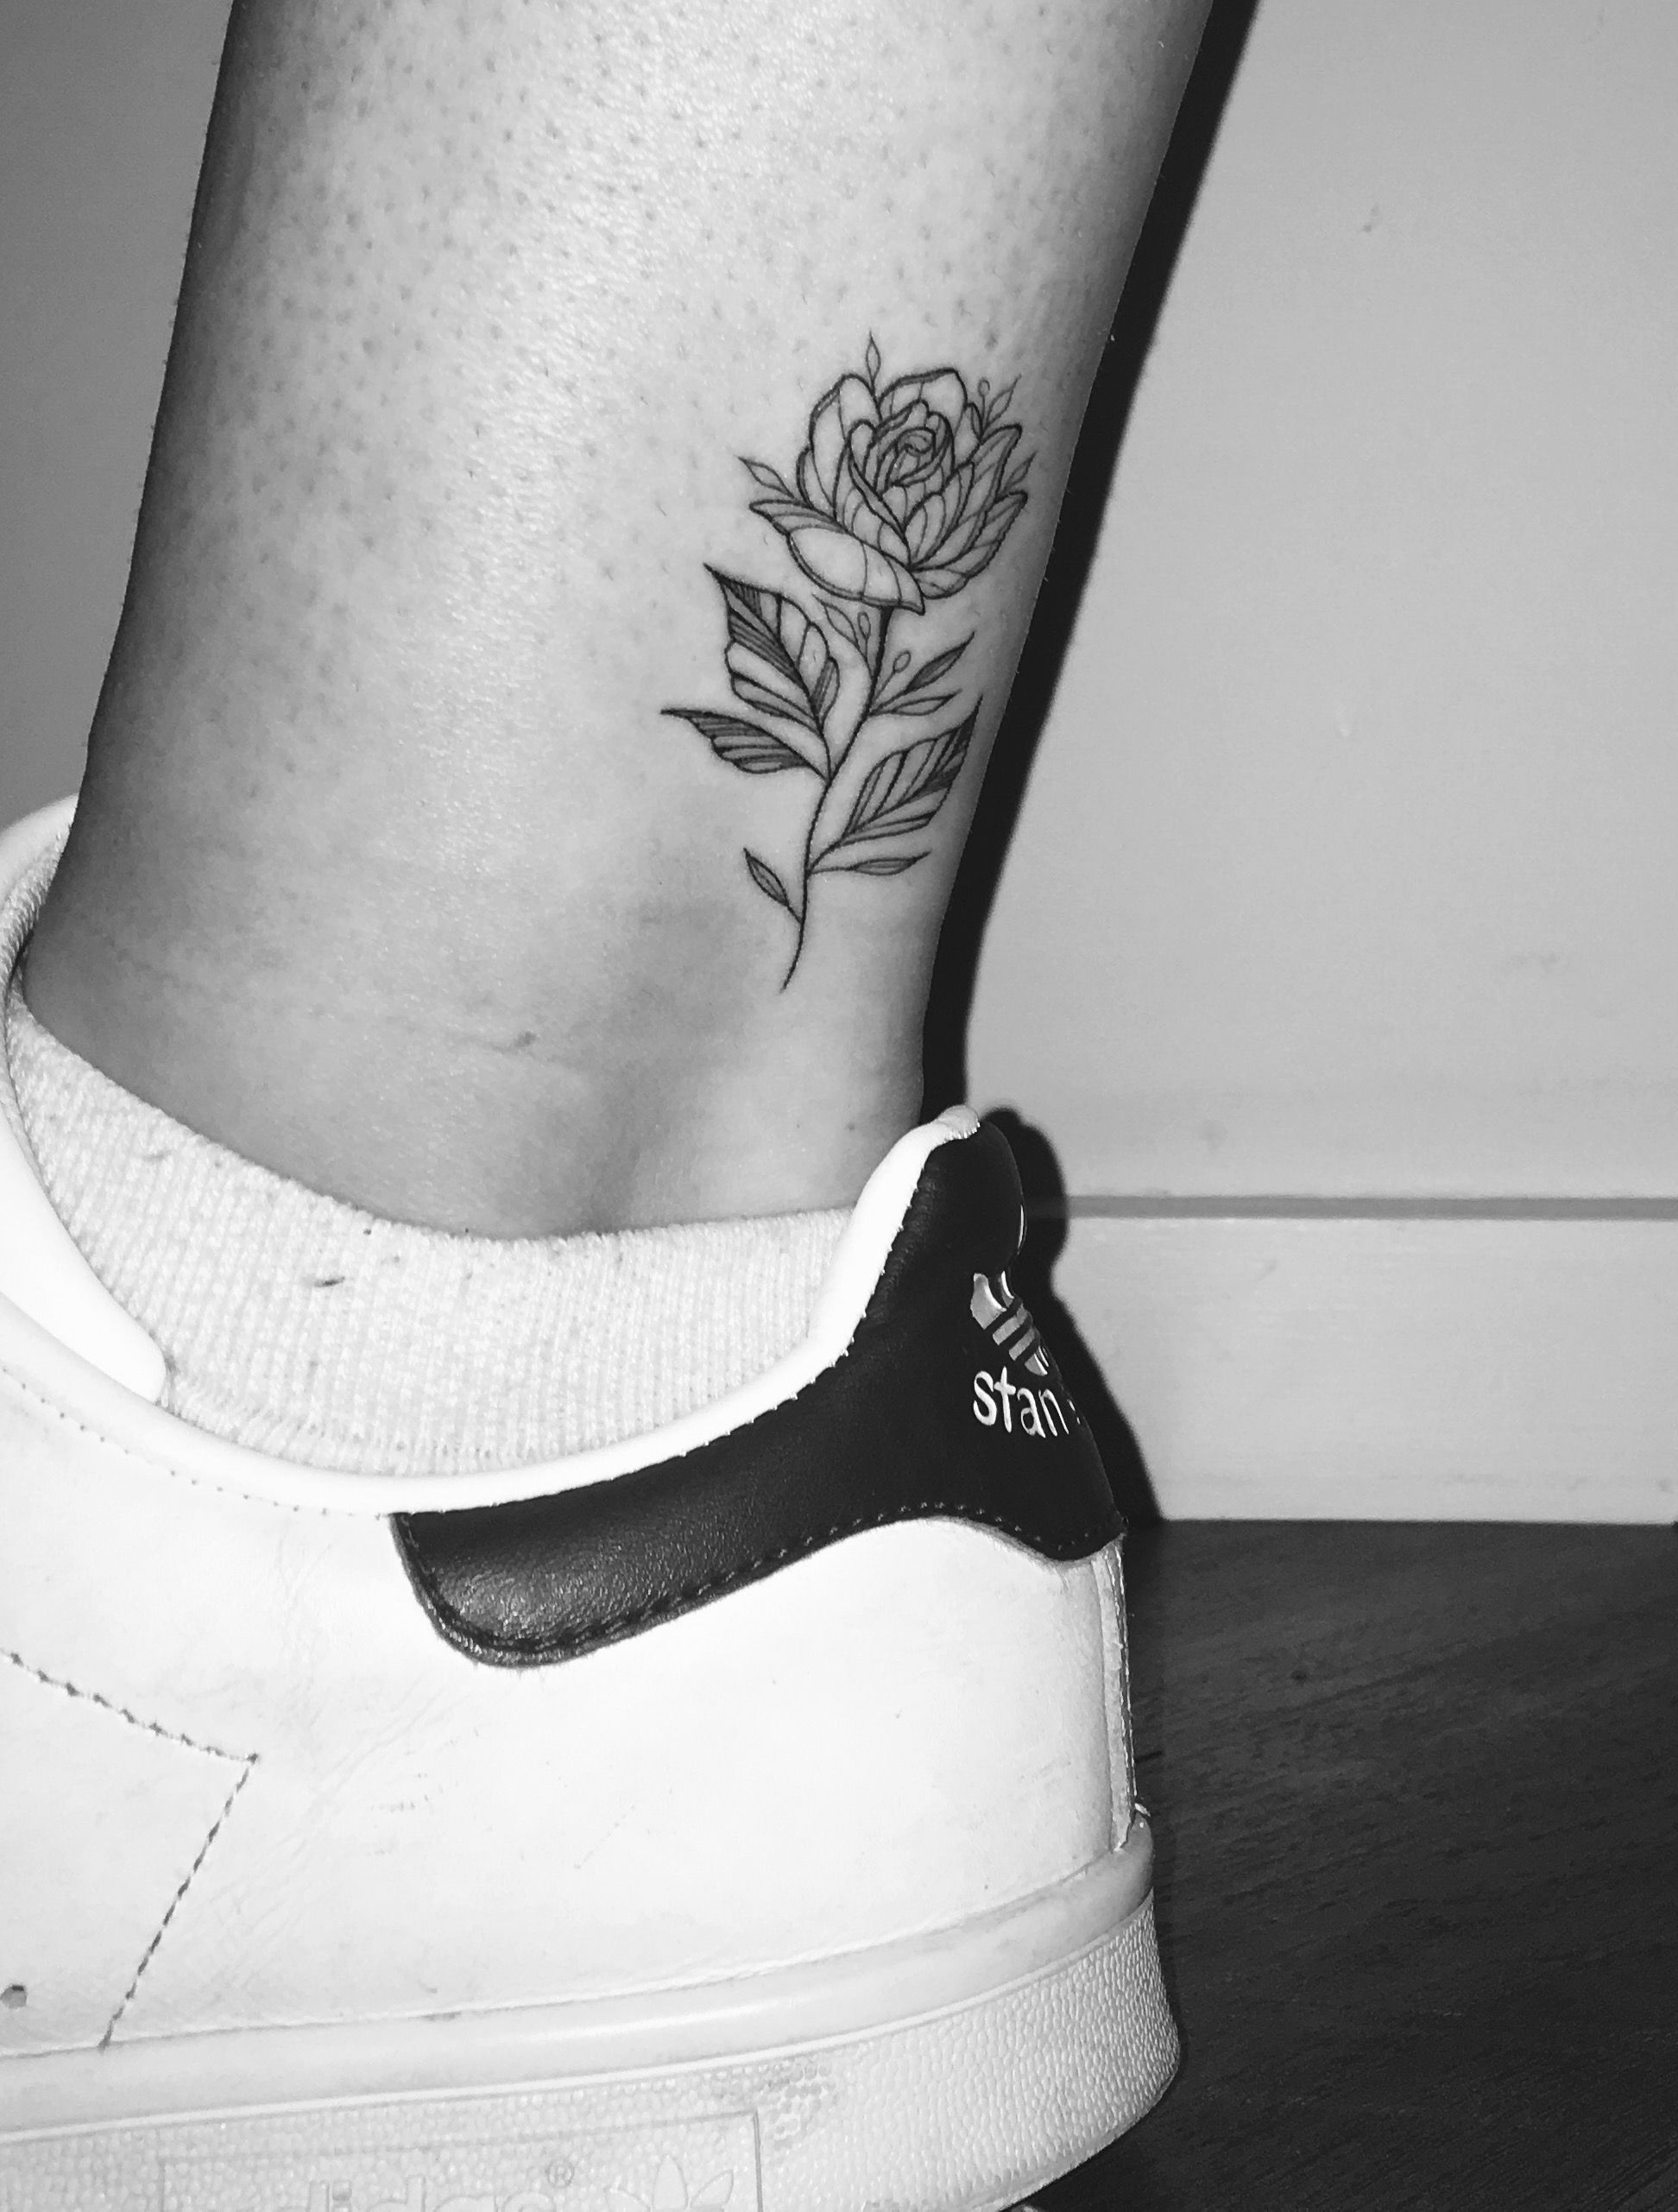 Little Rose Single Needle Tattoo On The Back Of The Ankle By Hannahnova Tattoo Rose Tattoo On Ankle Foot Tattoos Ankle Tattoo Small